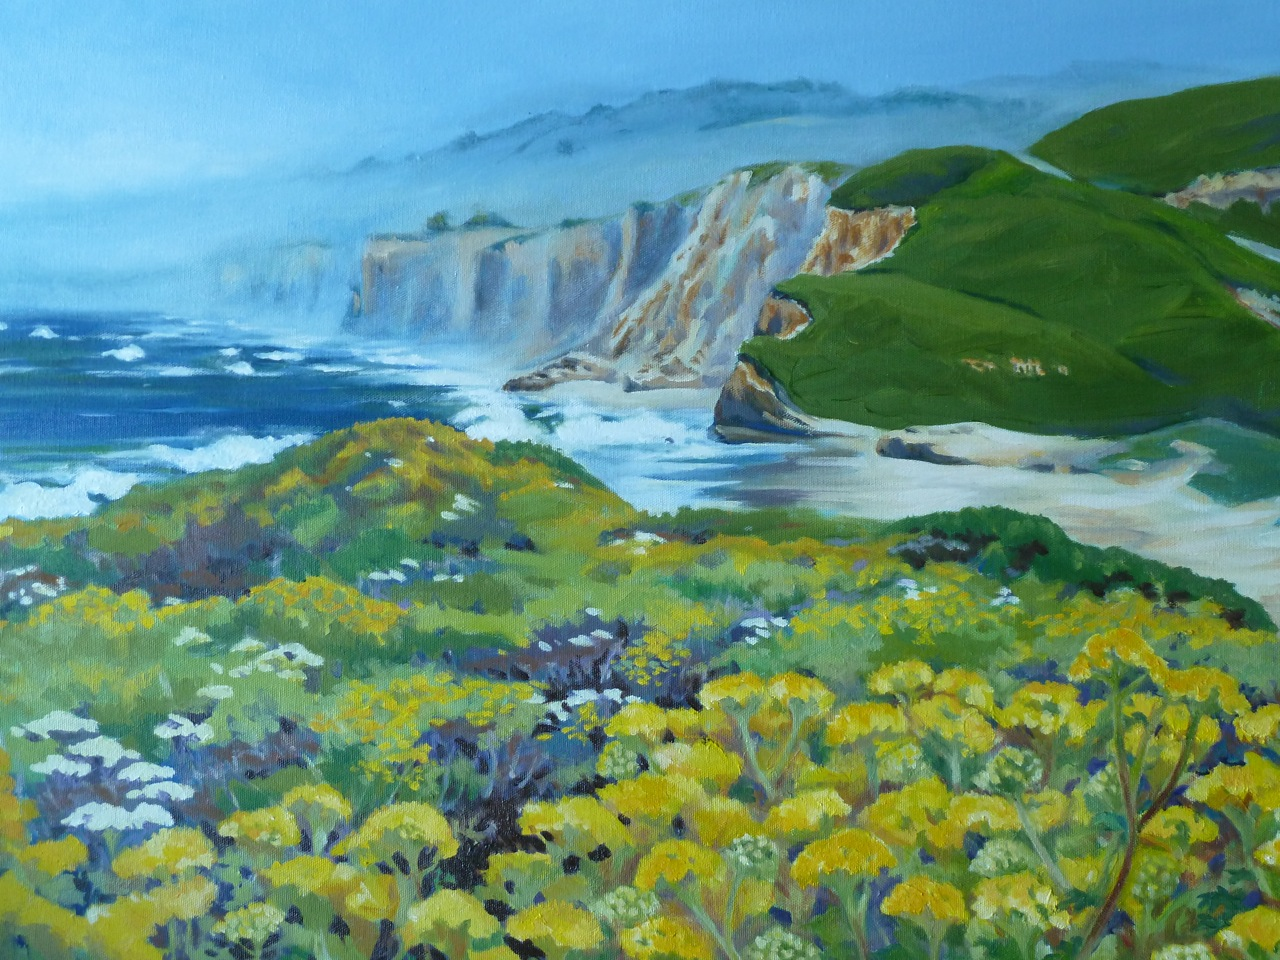 Pescadero Beach - Trevlyn Williams